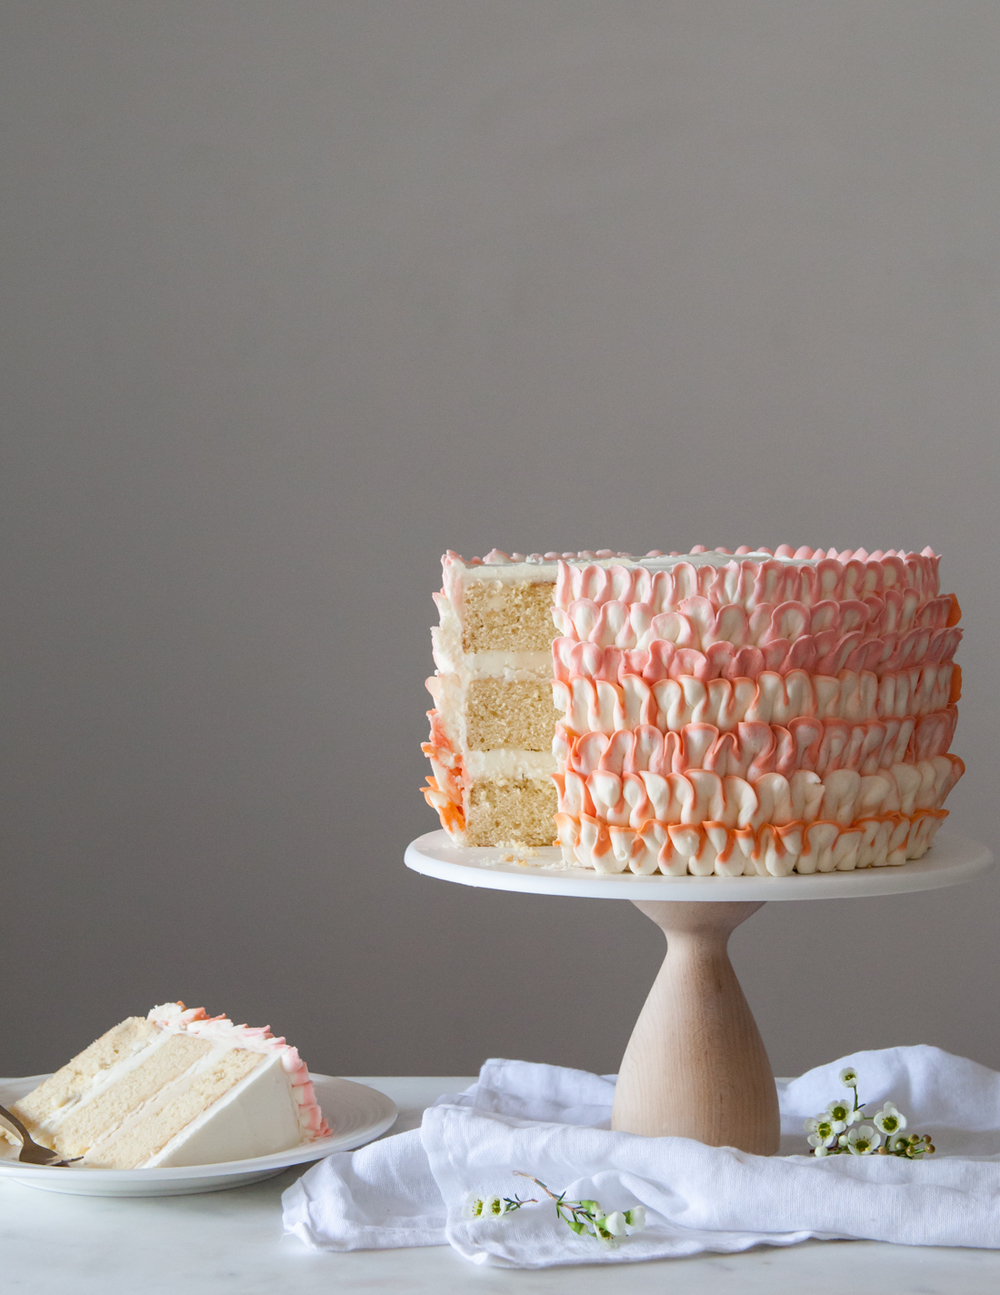 How to make a two-toned ruffle cake.